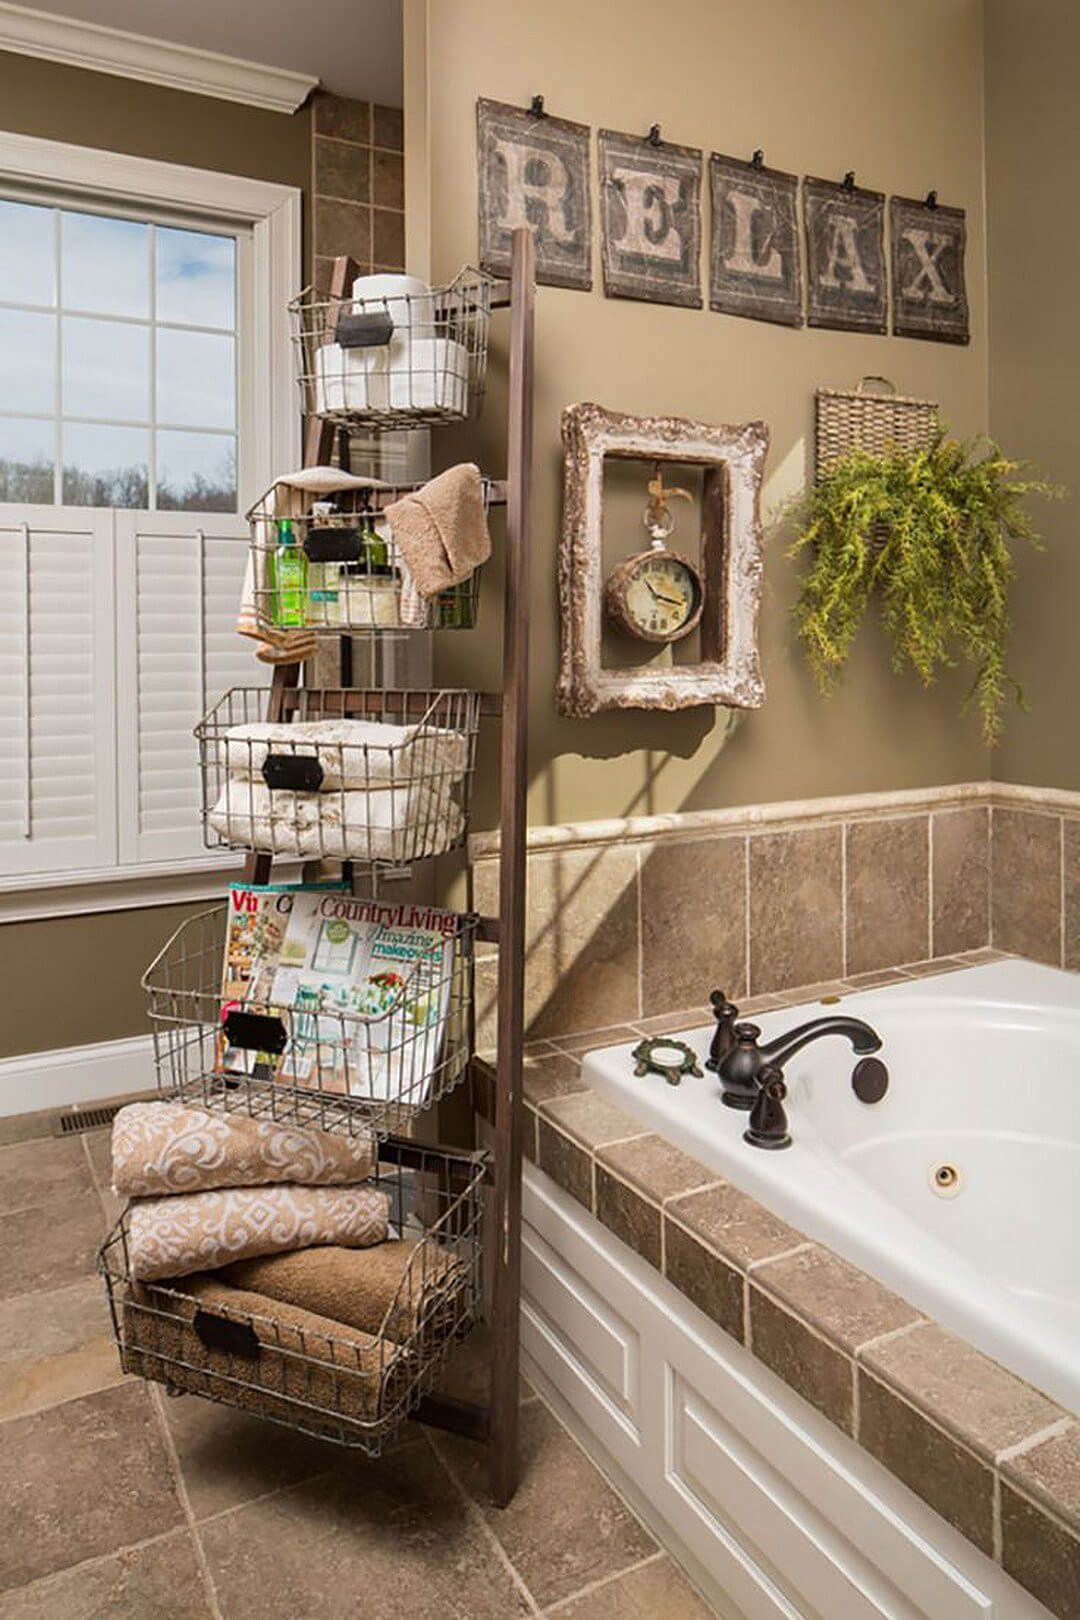 34 Space Saving Towel Storage Ideas For Your Bathroom Bathroom Decor Amazing Bathrooms Bathrooms Remodel